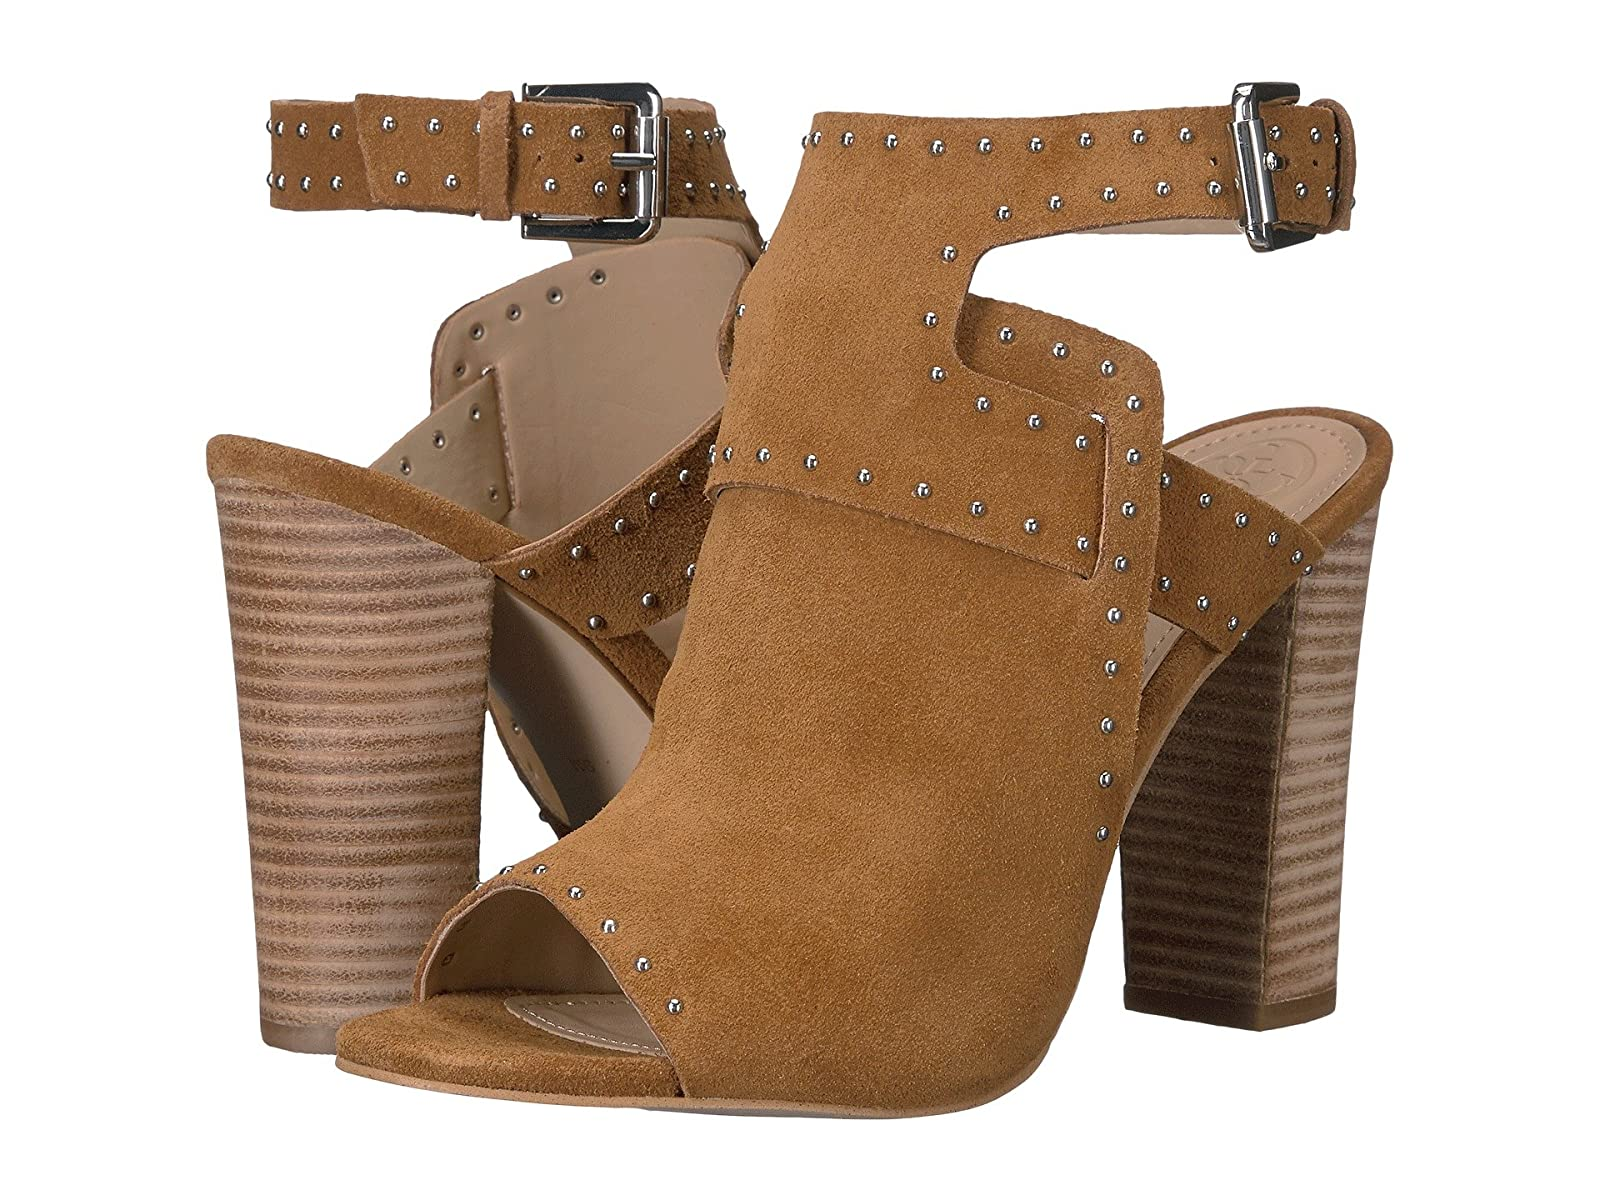 GUESS ErikaCheap and distinctive eye-catching shoes